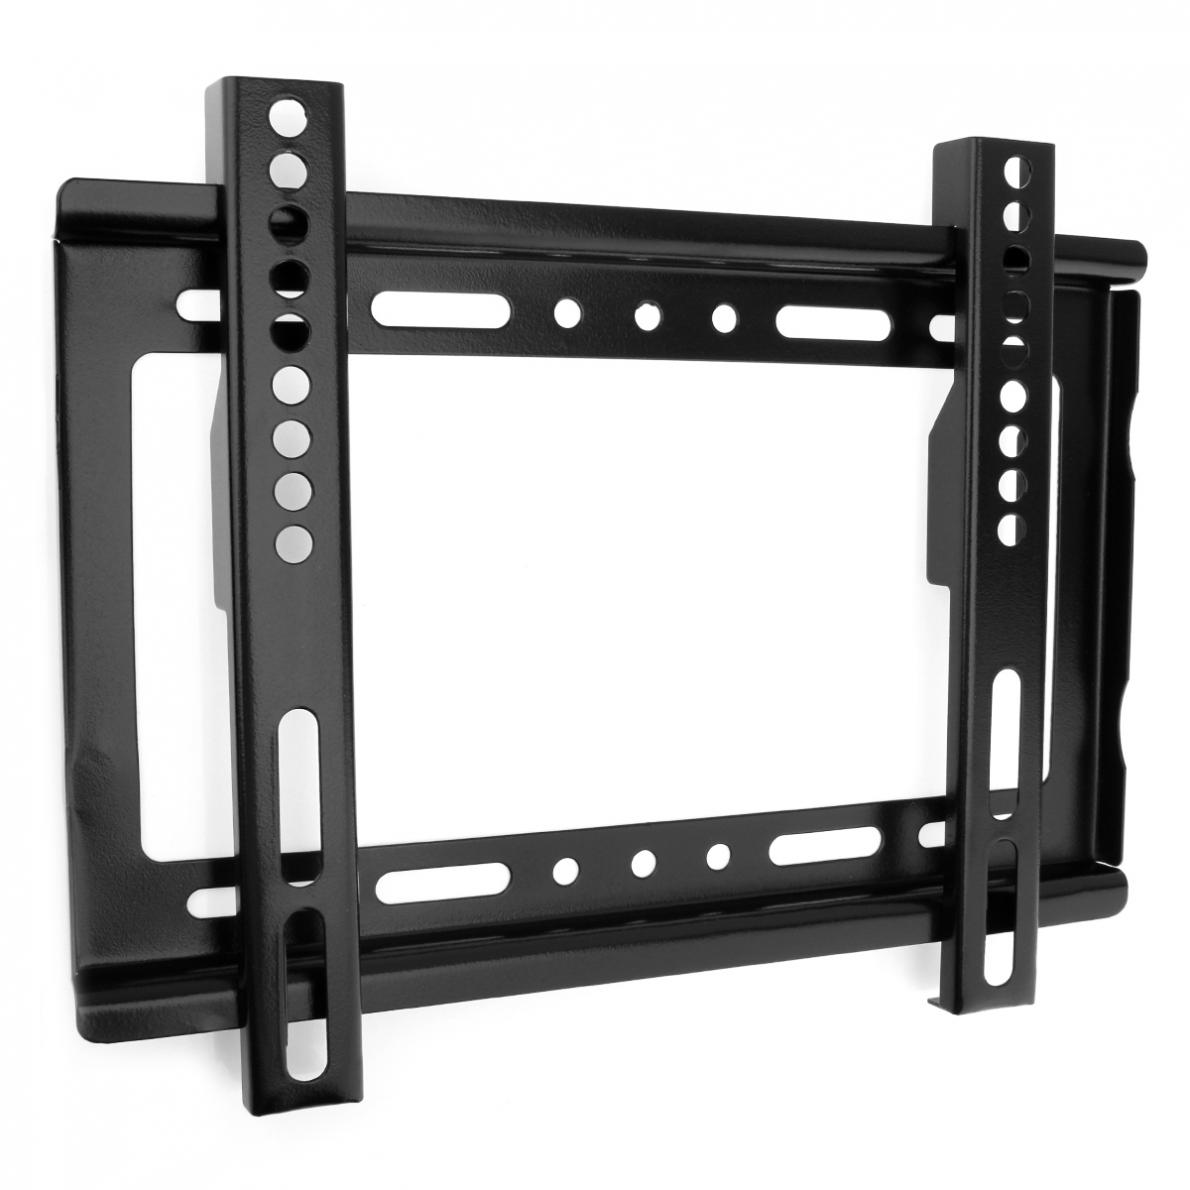 Universal Rotated TV Wall Mount Bracket for 14-24 Inch LED LCD Falt Panel TV